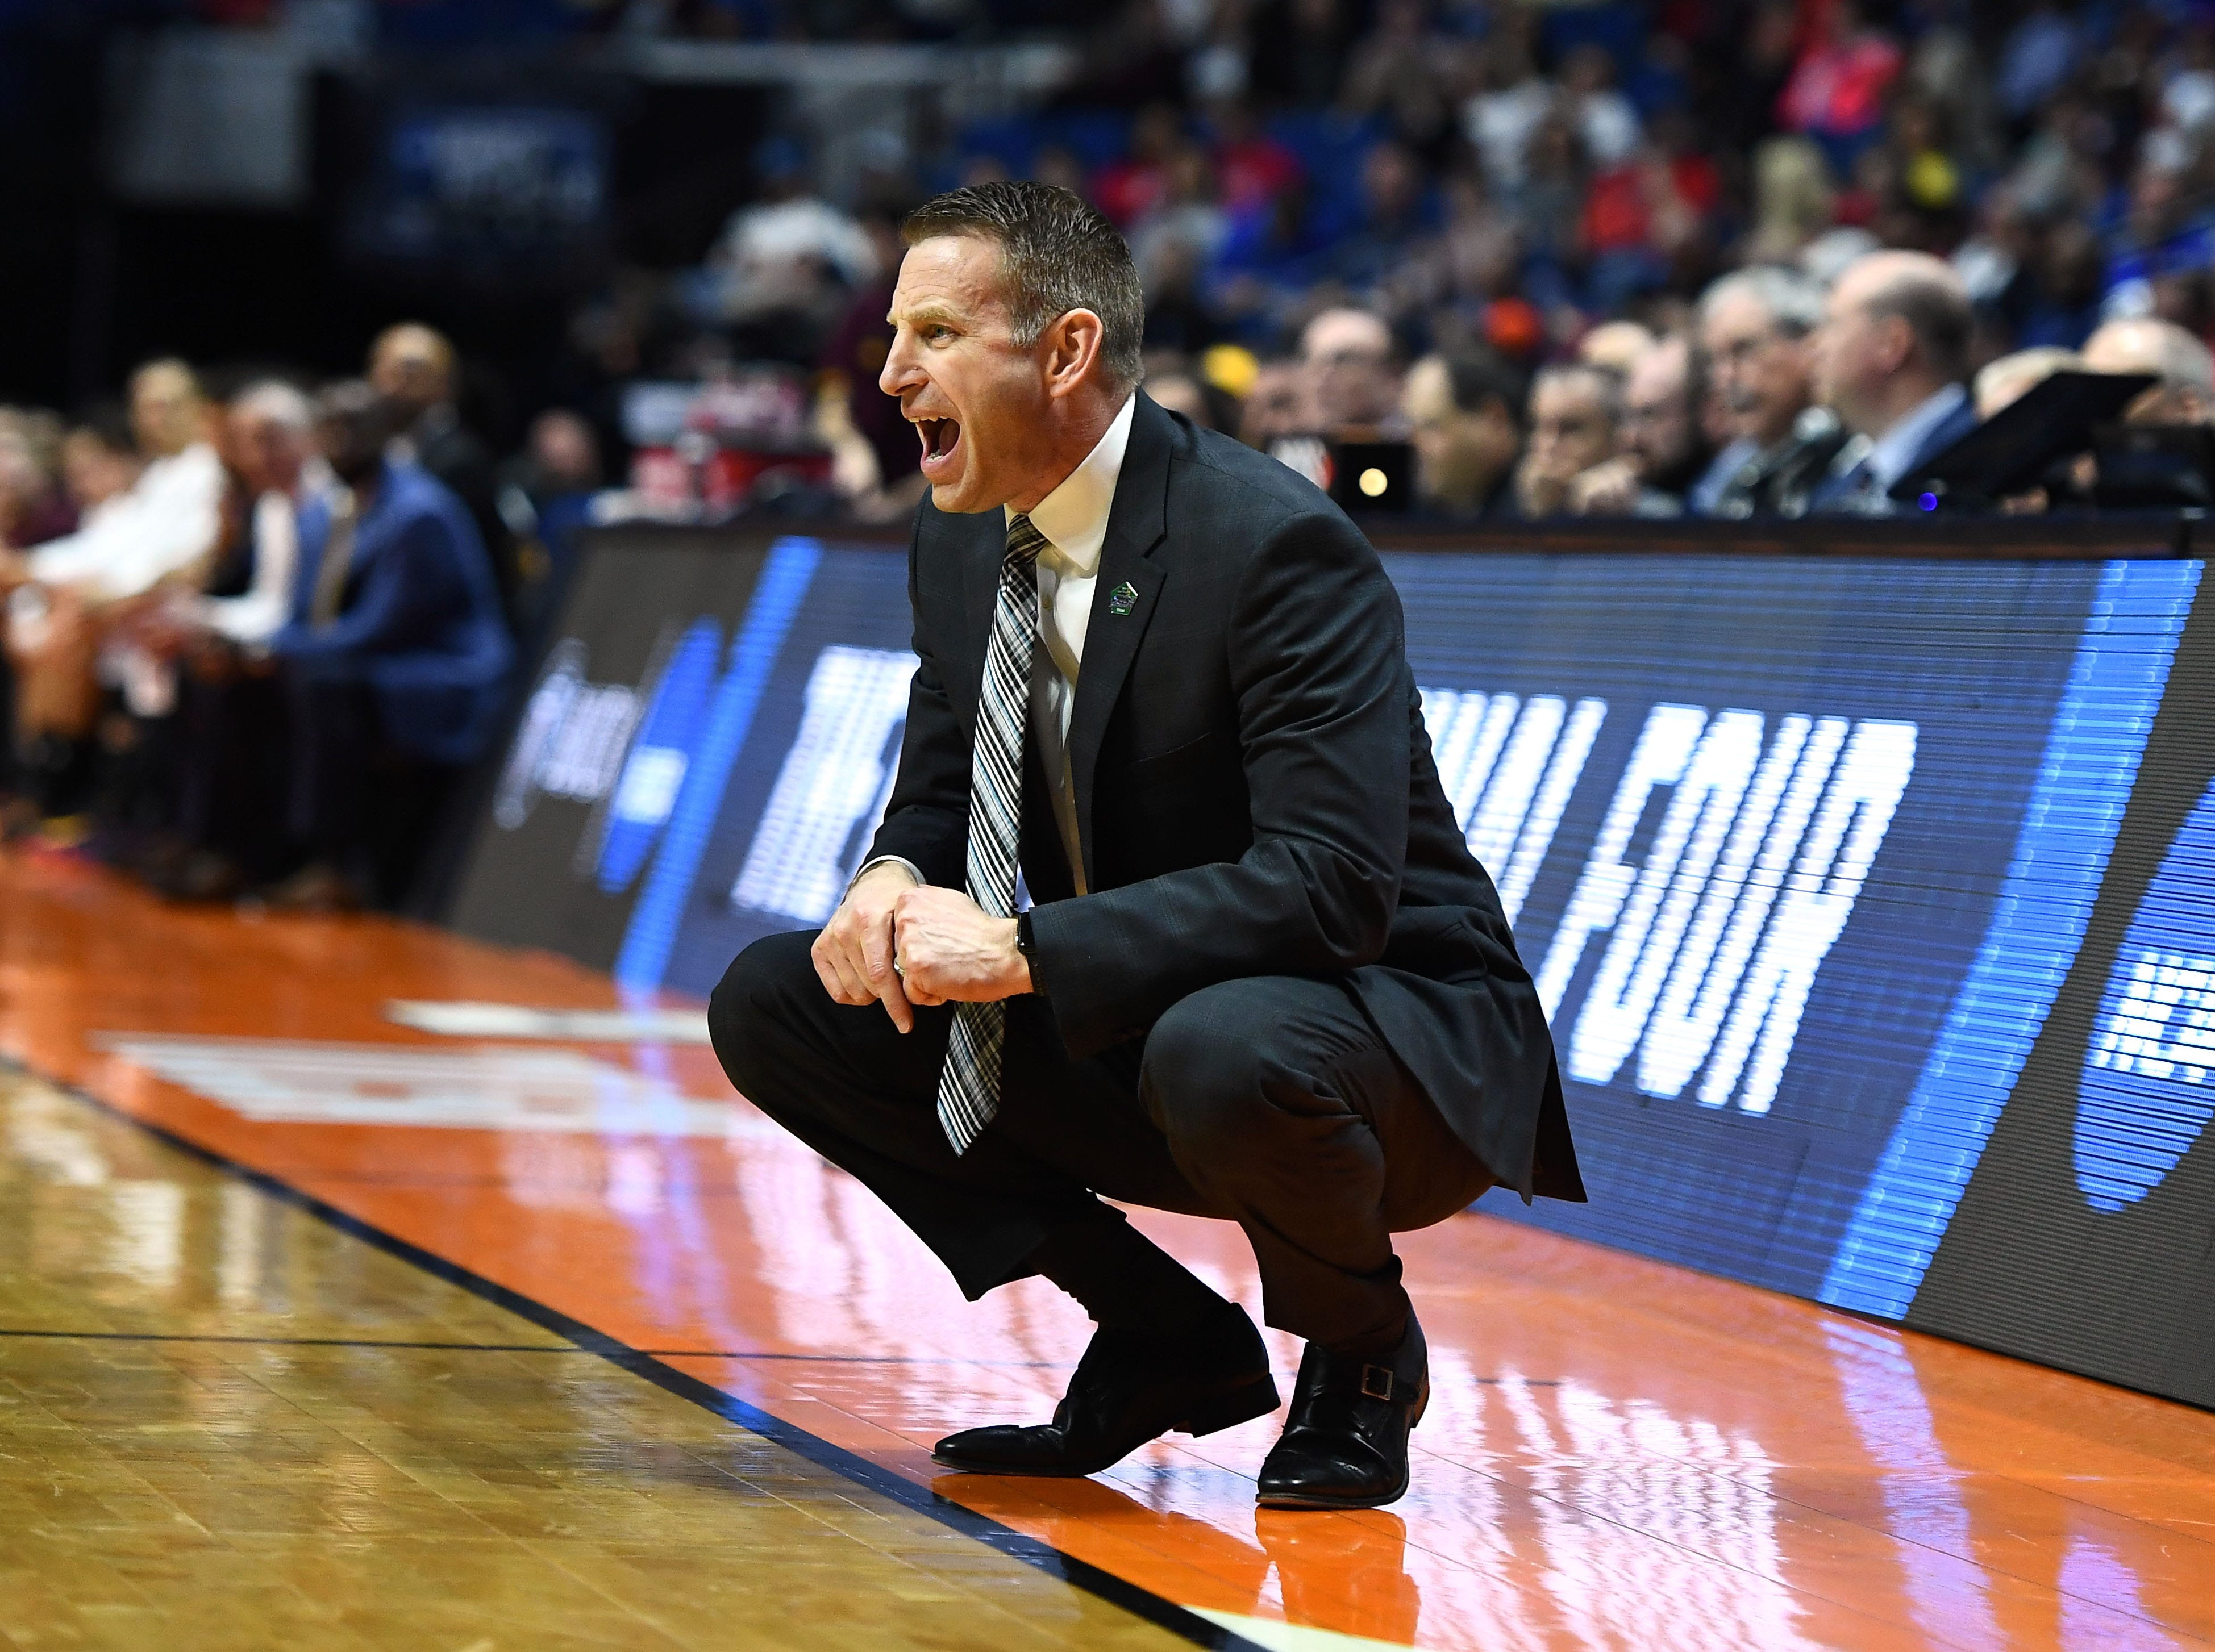 TULSA, OKLAHOMA - MARCH 22:  Head coach Nate Oats of the Buffalo Bulls yells from the sidelines during the first half of the first round game of the 2019 NCAA Men's Basketball Tournament against the Arizona State Sun Devils at BOK Center on March 22, 2019 in Tulsa, Oklahoma. (Photo by Stacy Revere/Getty Images)